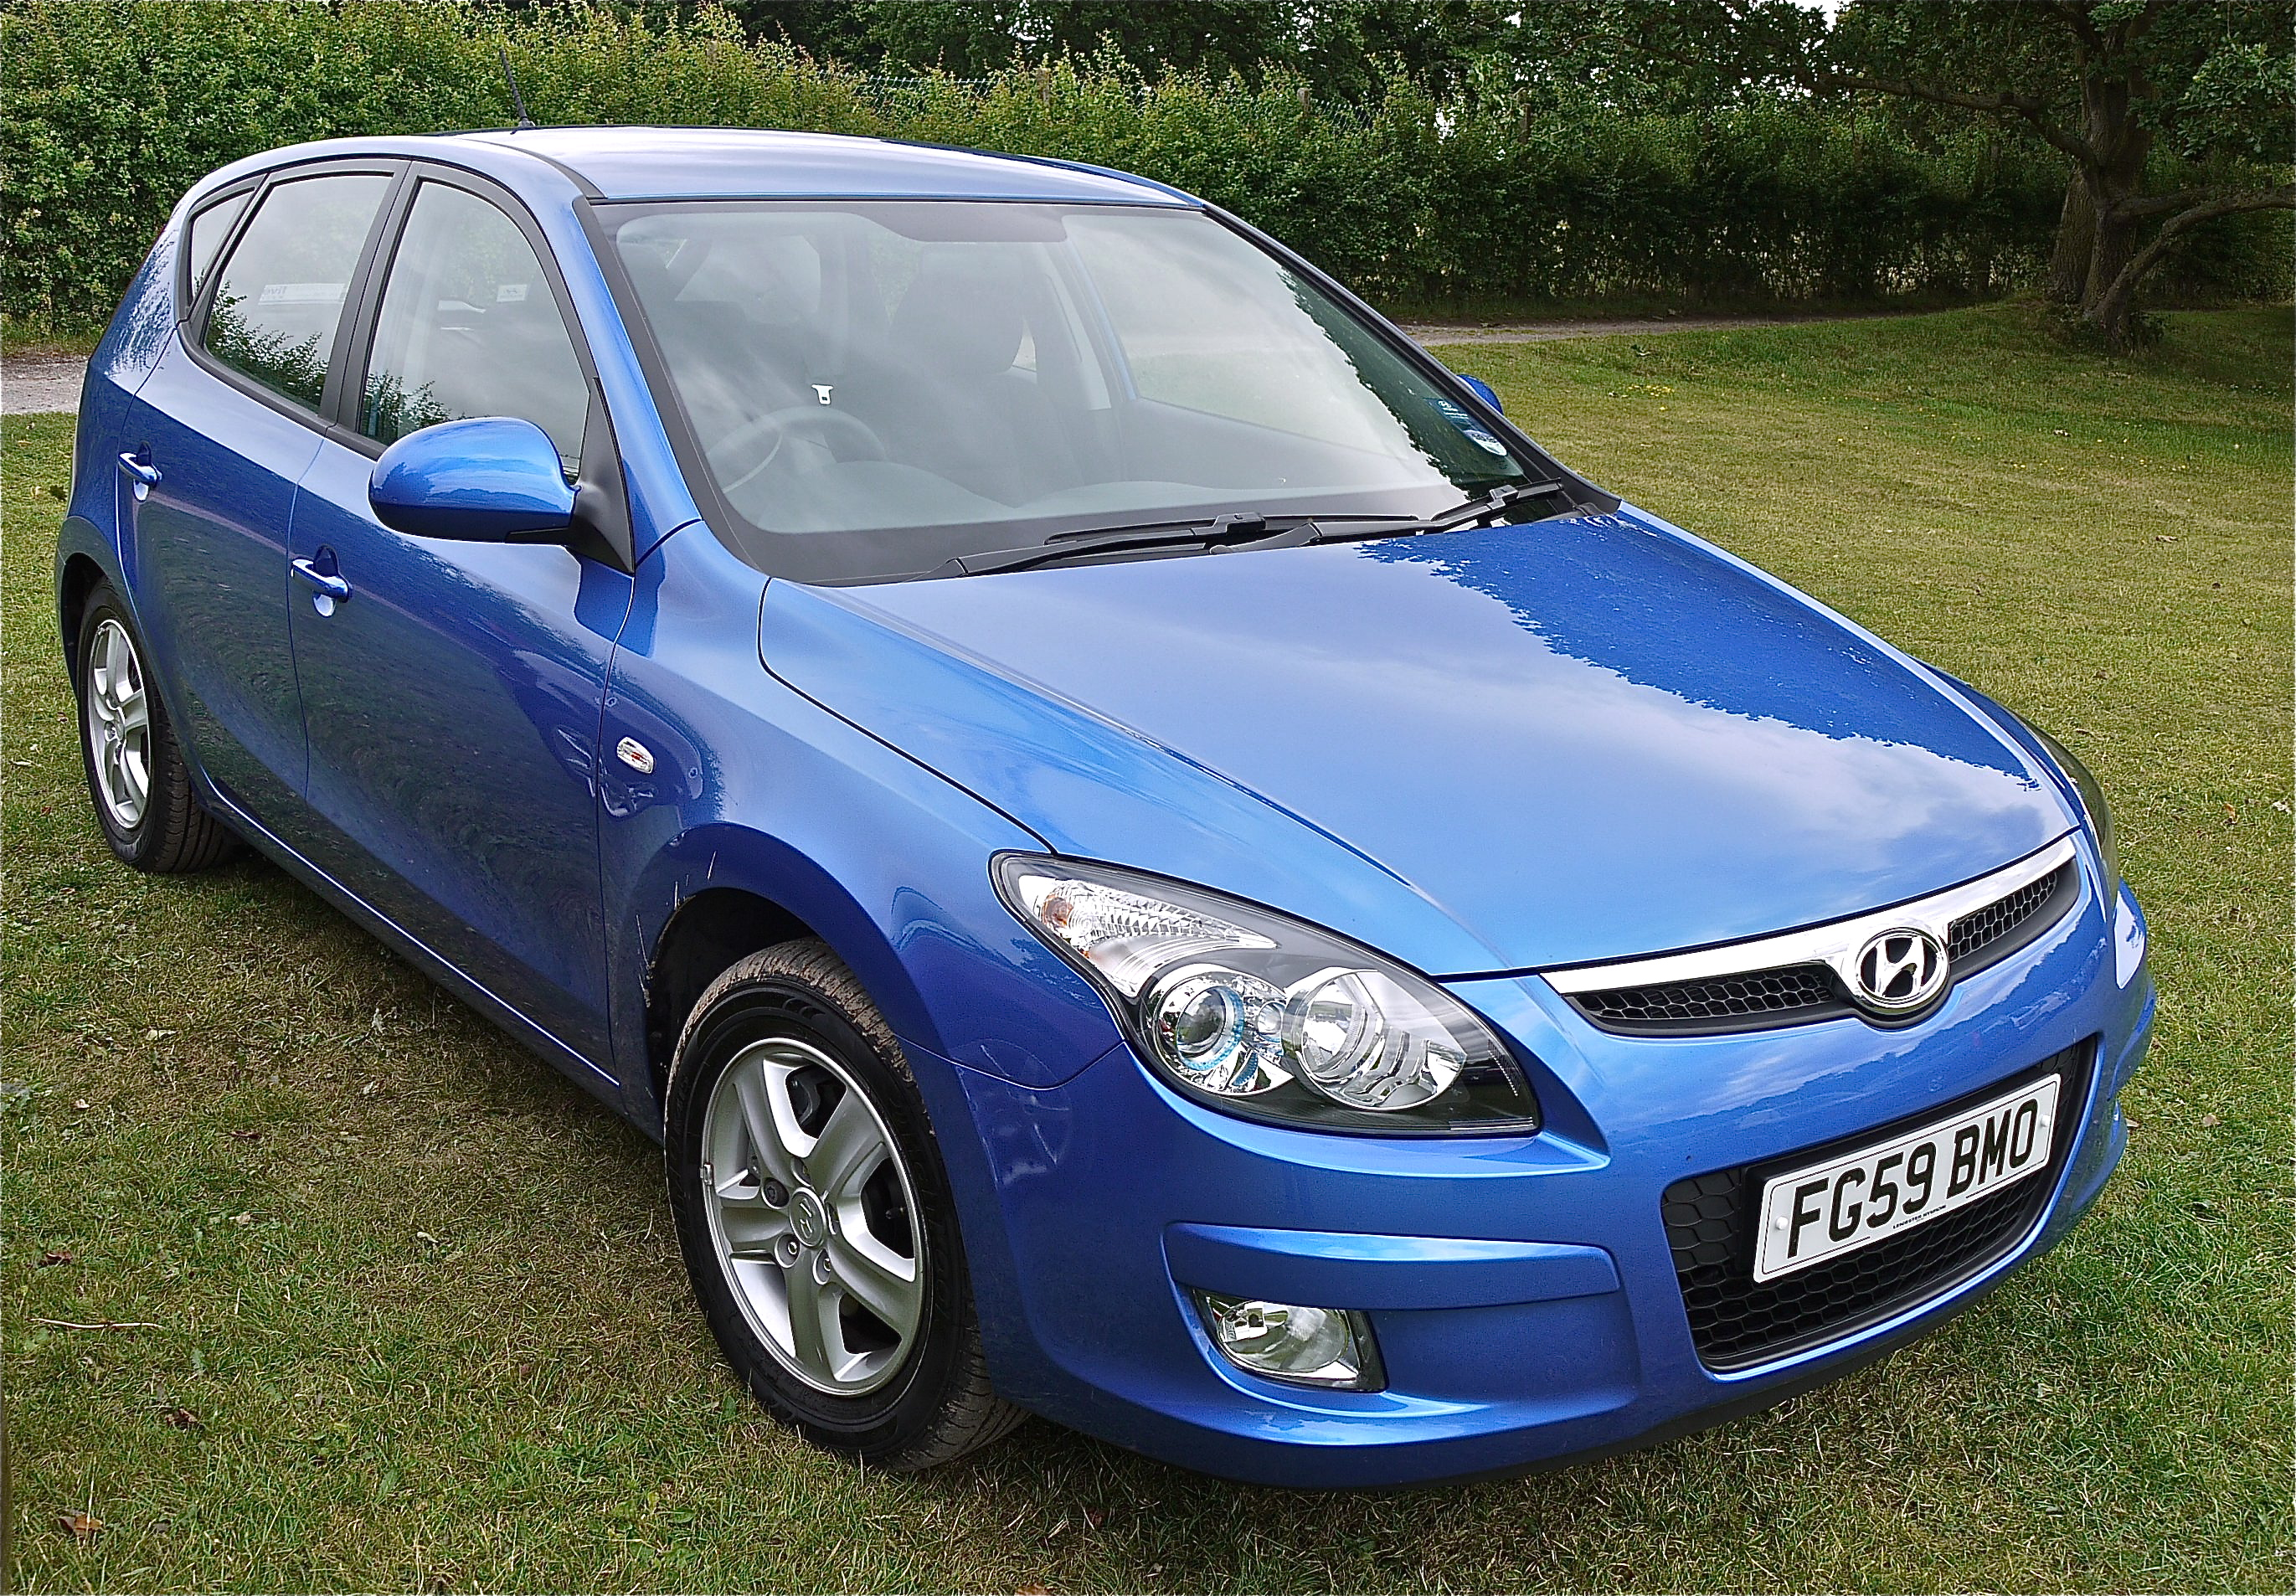 file hyundai i30 front flickr mick wikimedia commons. Black Bedroom Furniture Sets. Home Design Ideas